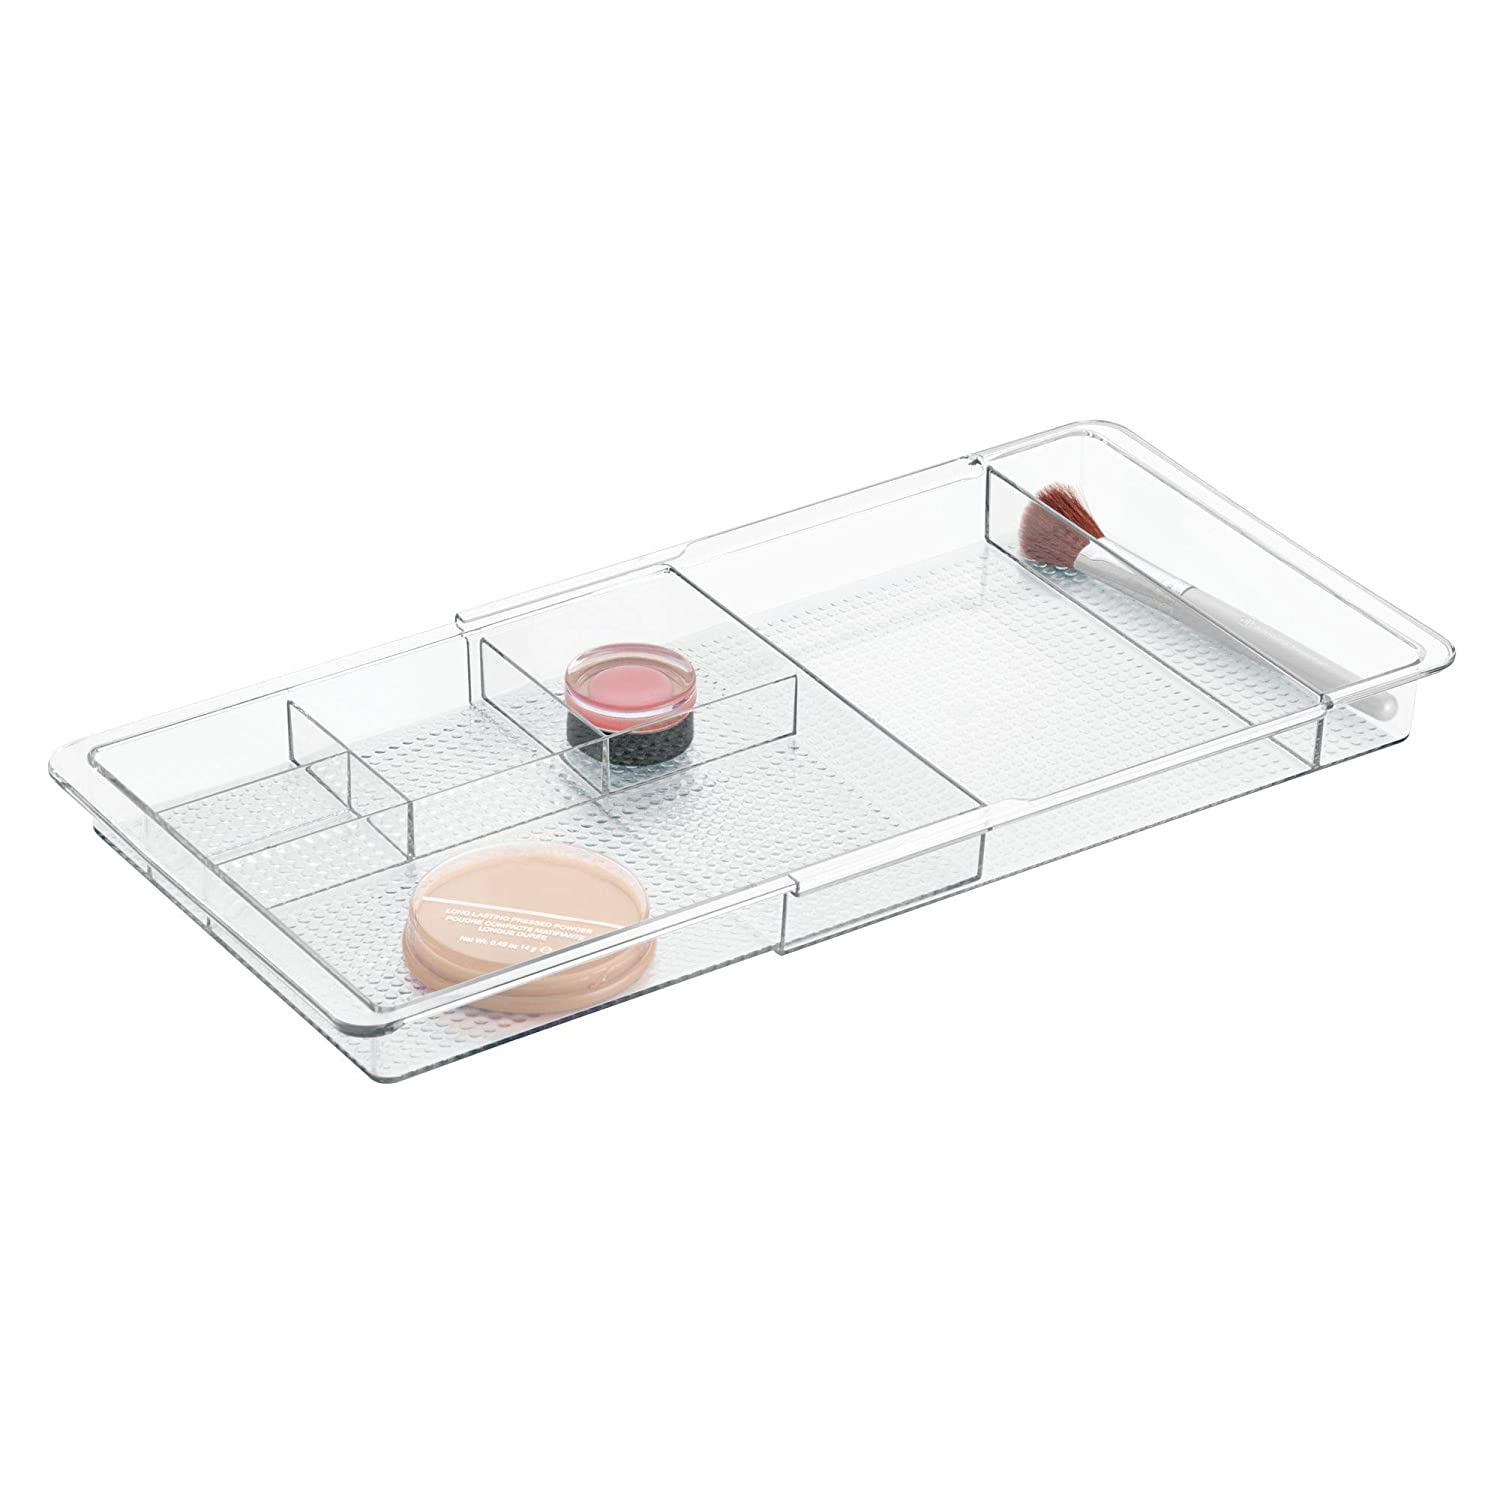 InterDesign Clarity Plastic Expandable Drawer Organizer for Vanity, Bathroom, Kitchen, Desk Storage, Extends up to 18.5 Inches, Clear